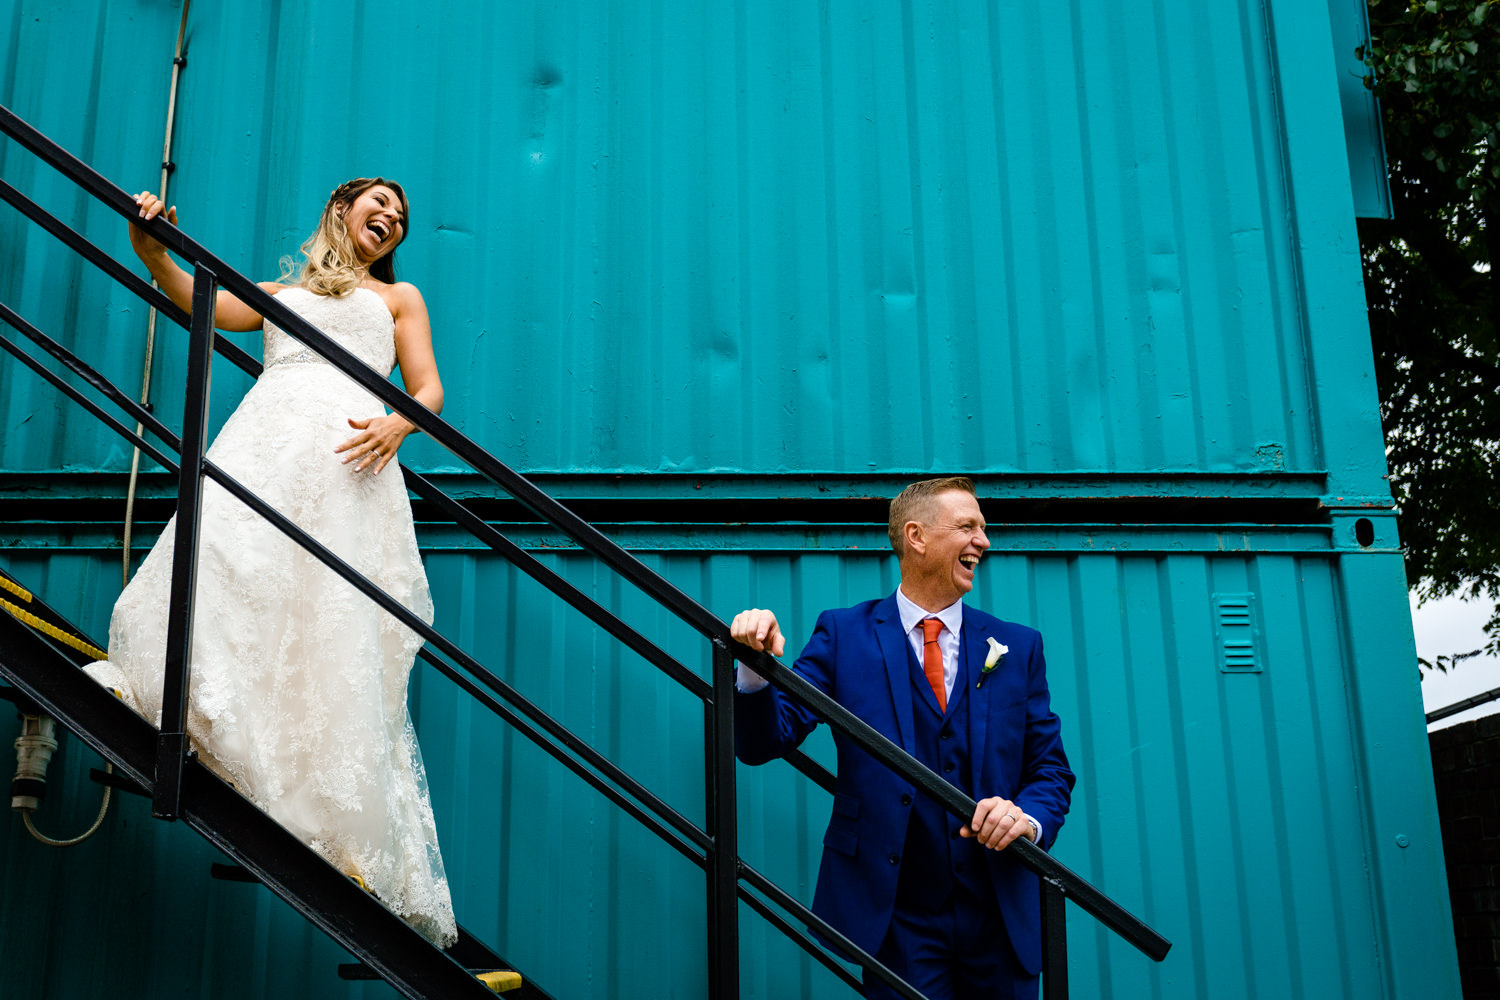 A bride and groom laughing in front of a bright blue container at Victoria Warehouse, colourful wedding photographers